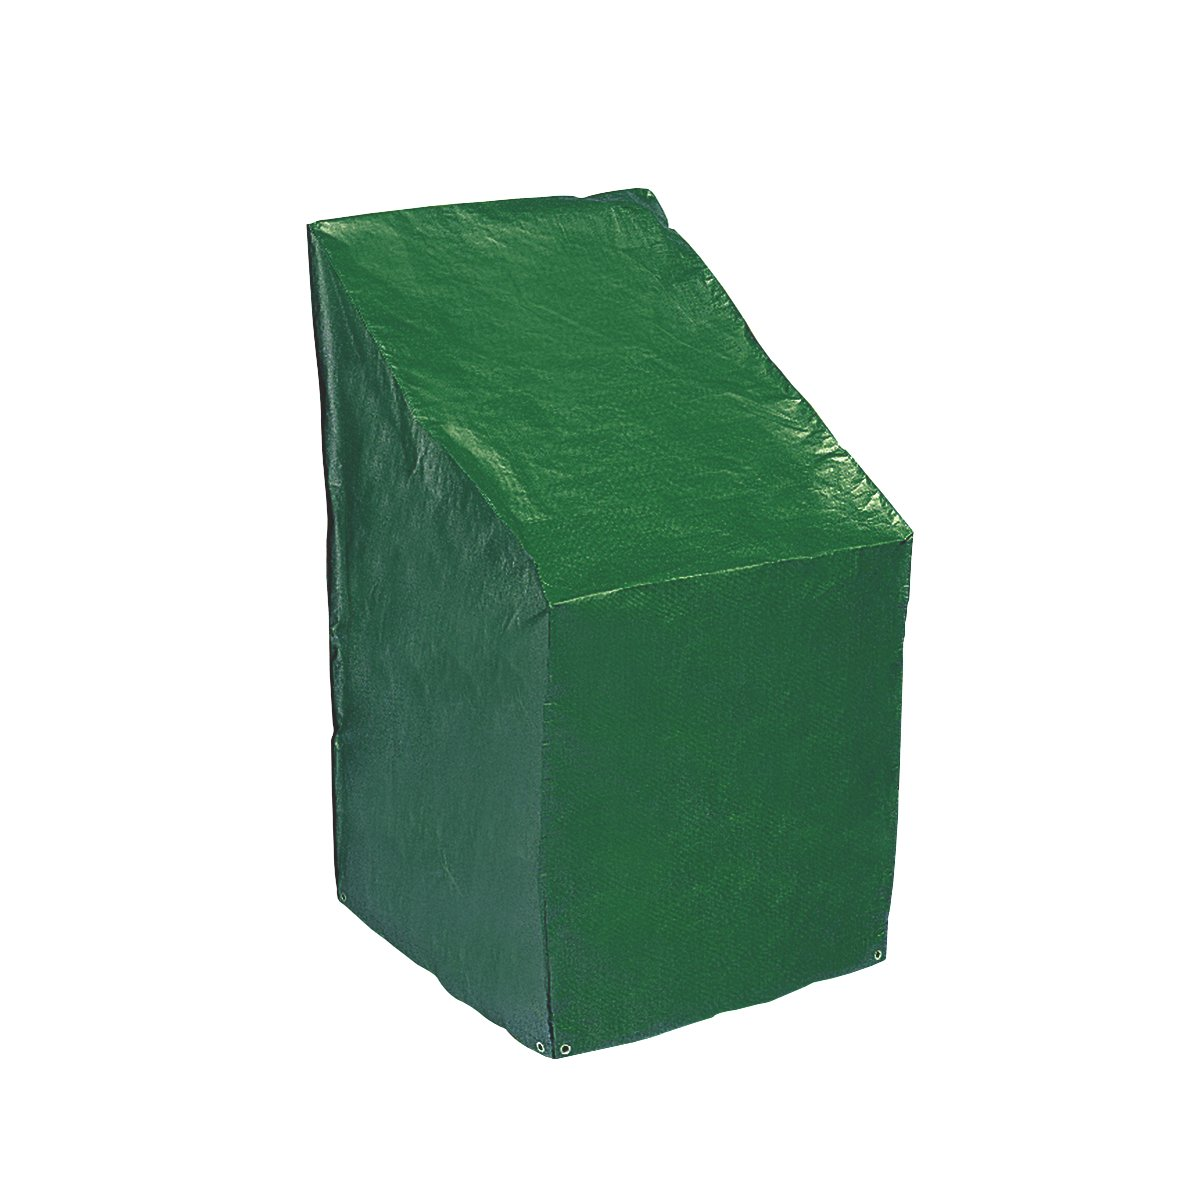 Bosmere B370 Stacking/Reclining Chair Cover Bosmere Products Ltd